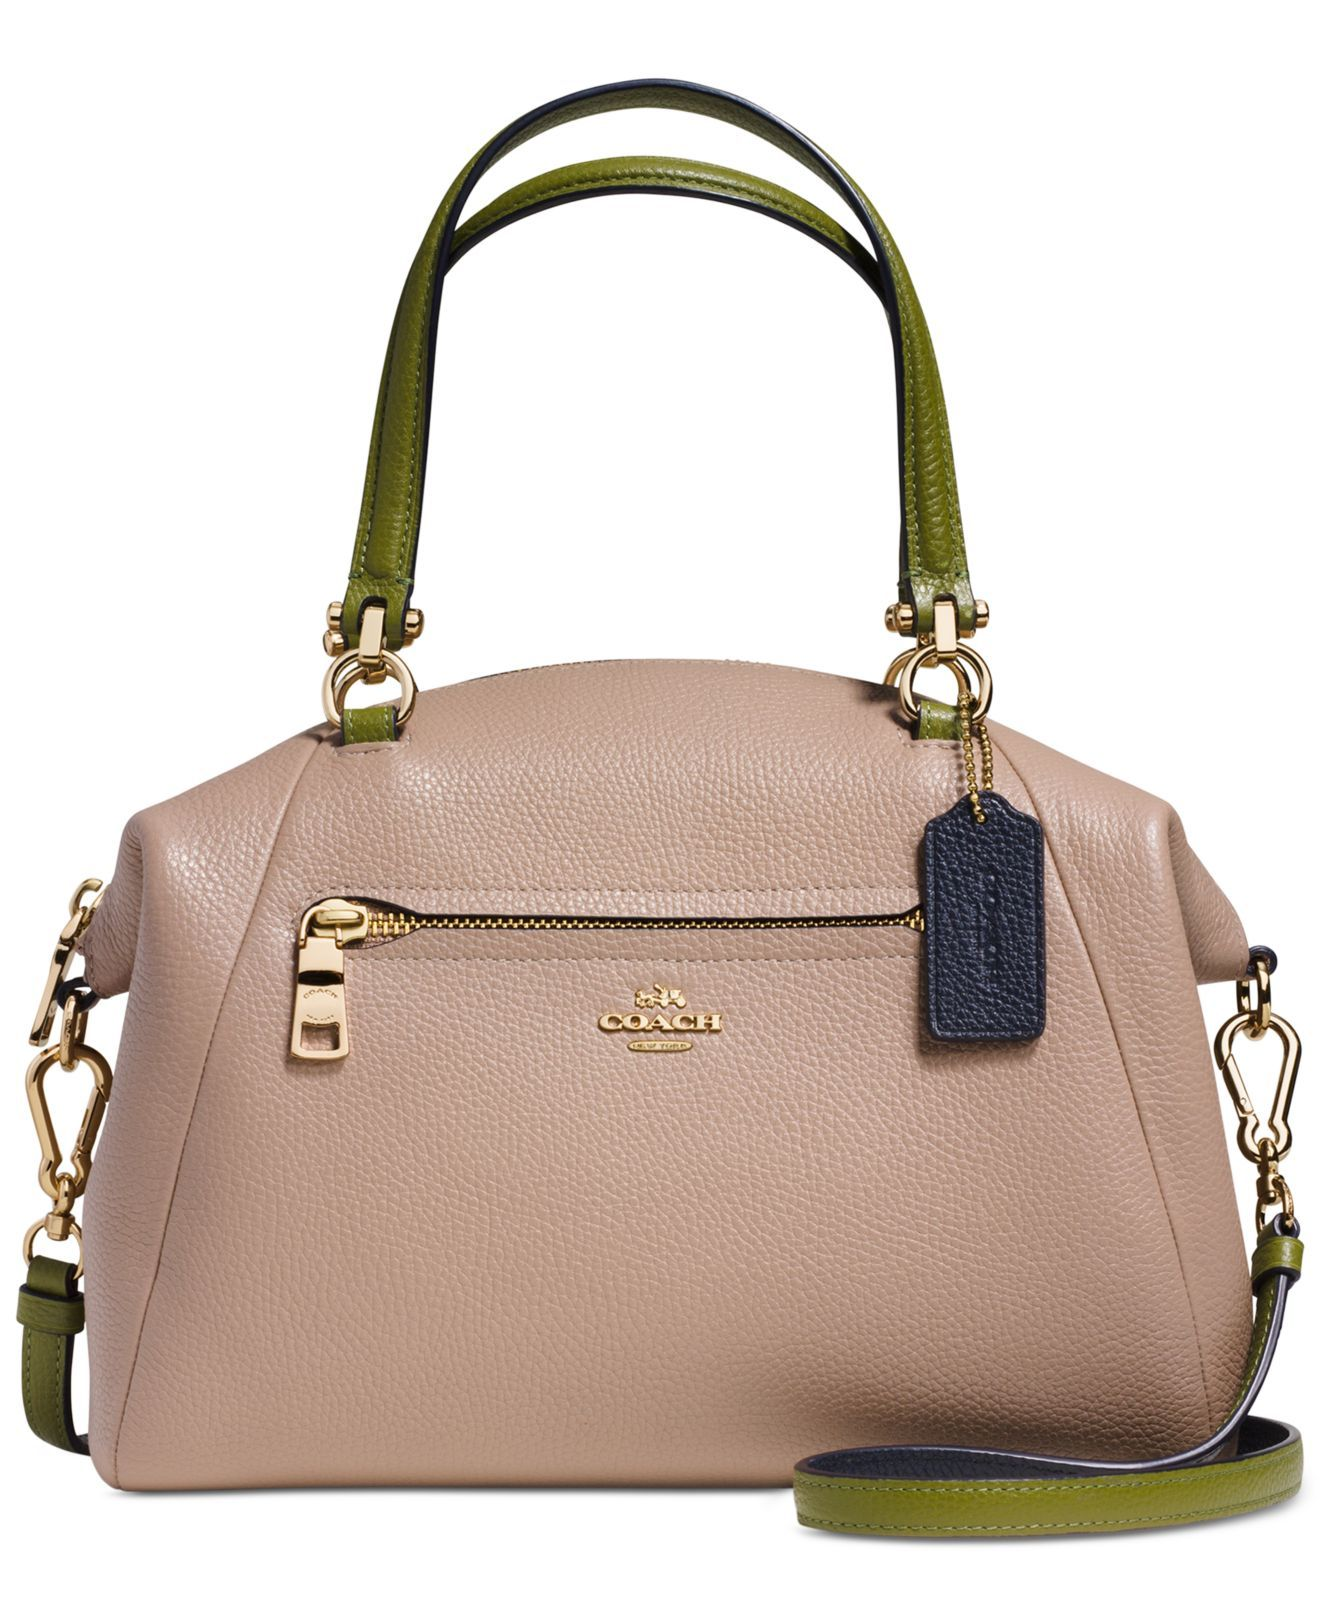 f2b2ec128d84 Look at this COACH Prairie satchel! That tan and green colorblocking —  gorge!